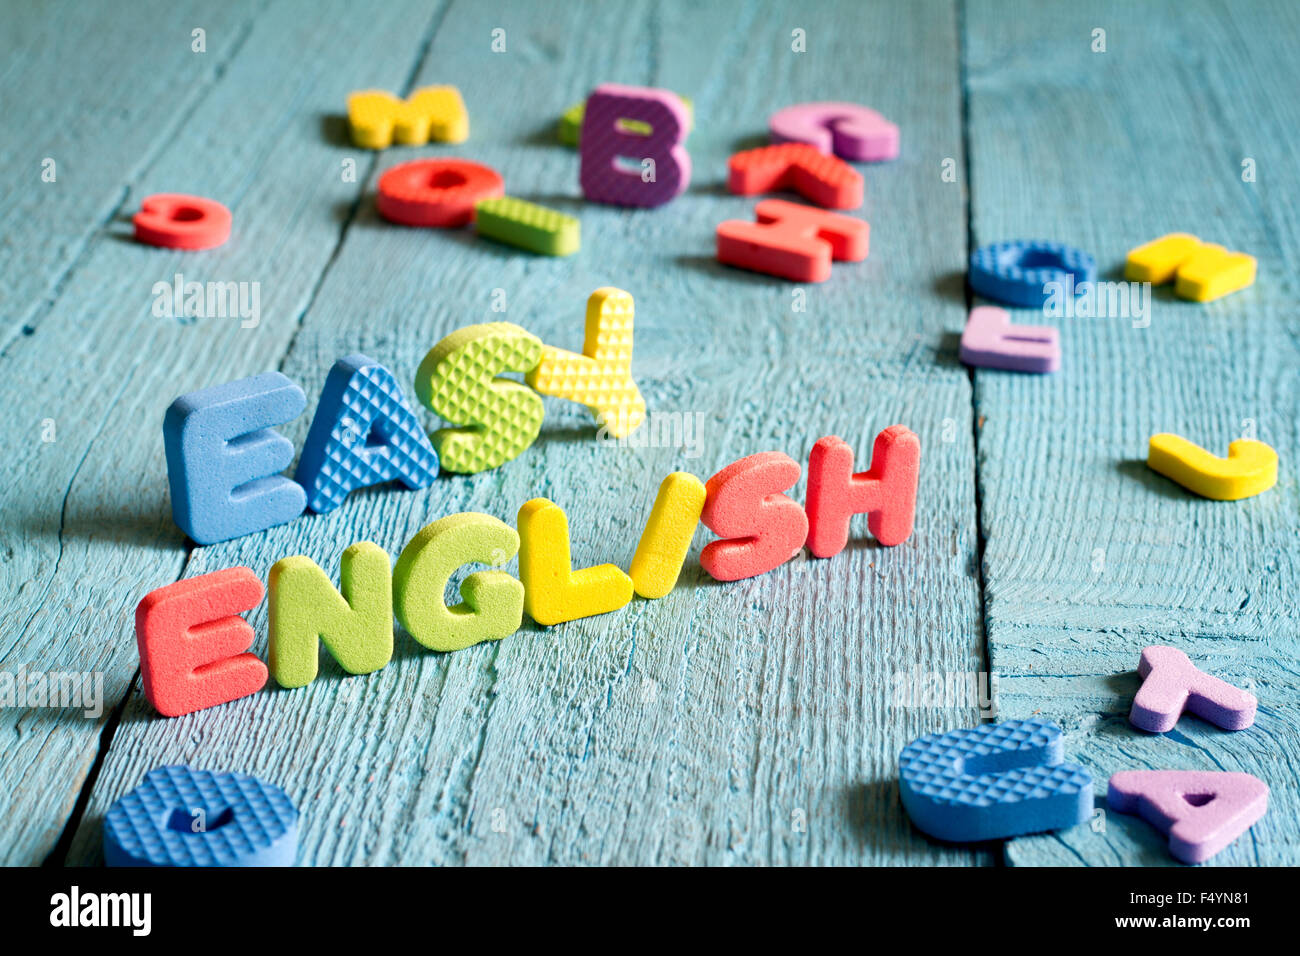 English is easy to learning concept with letters on blue boards concept - Stock Image